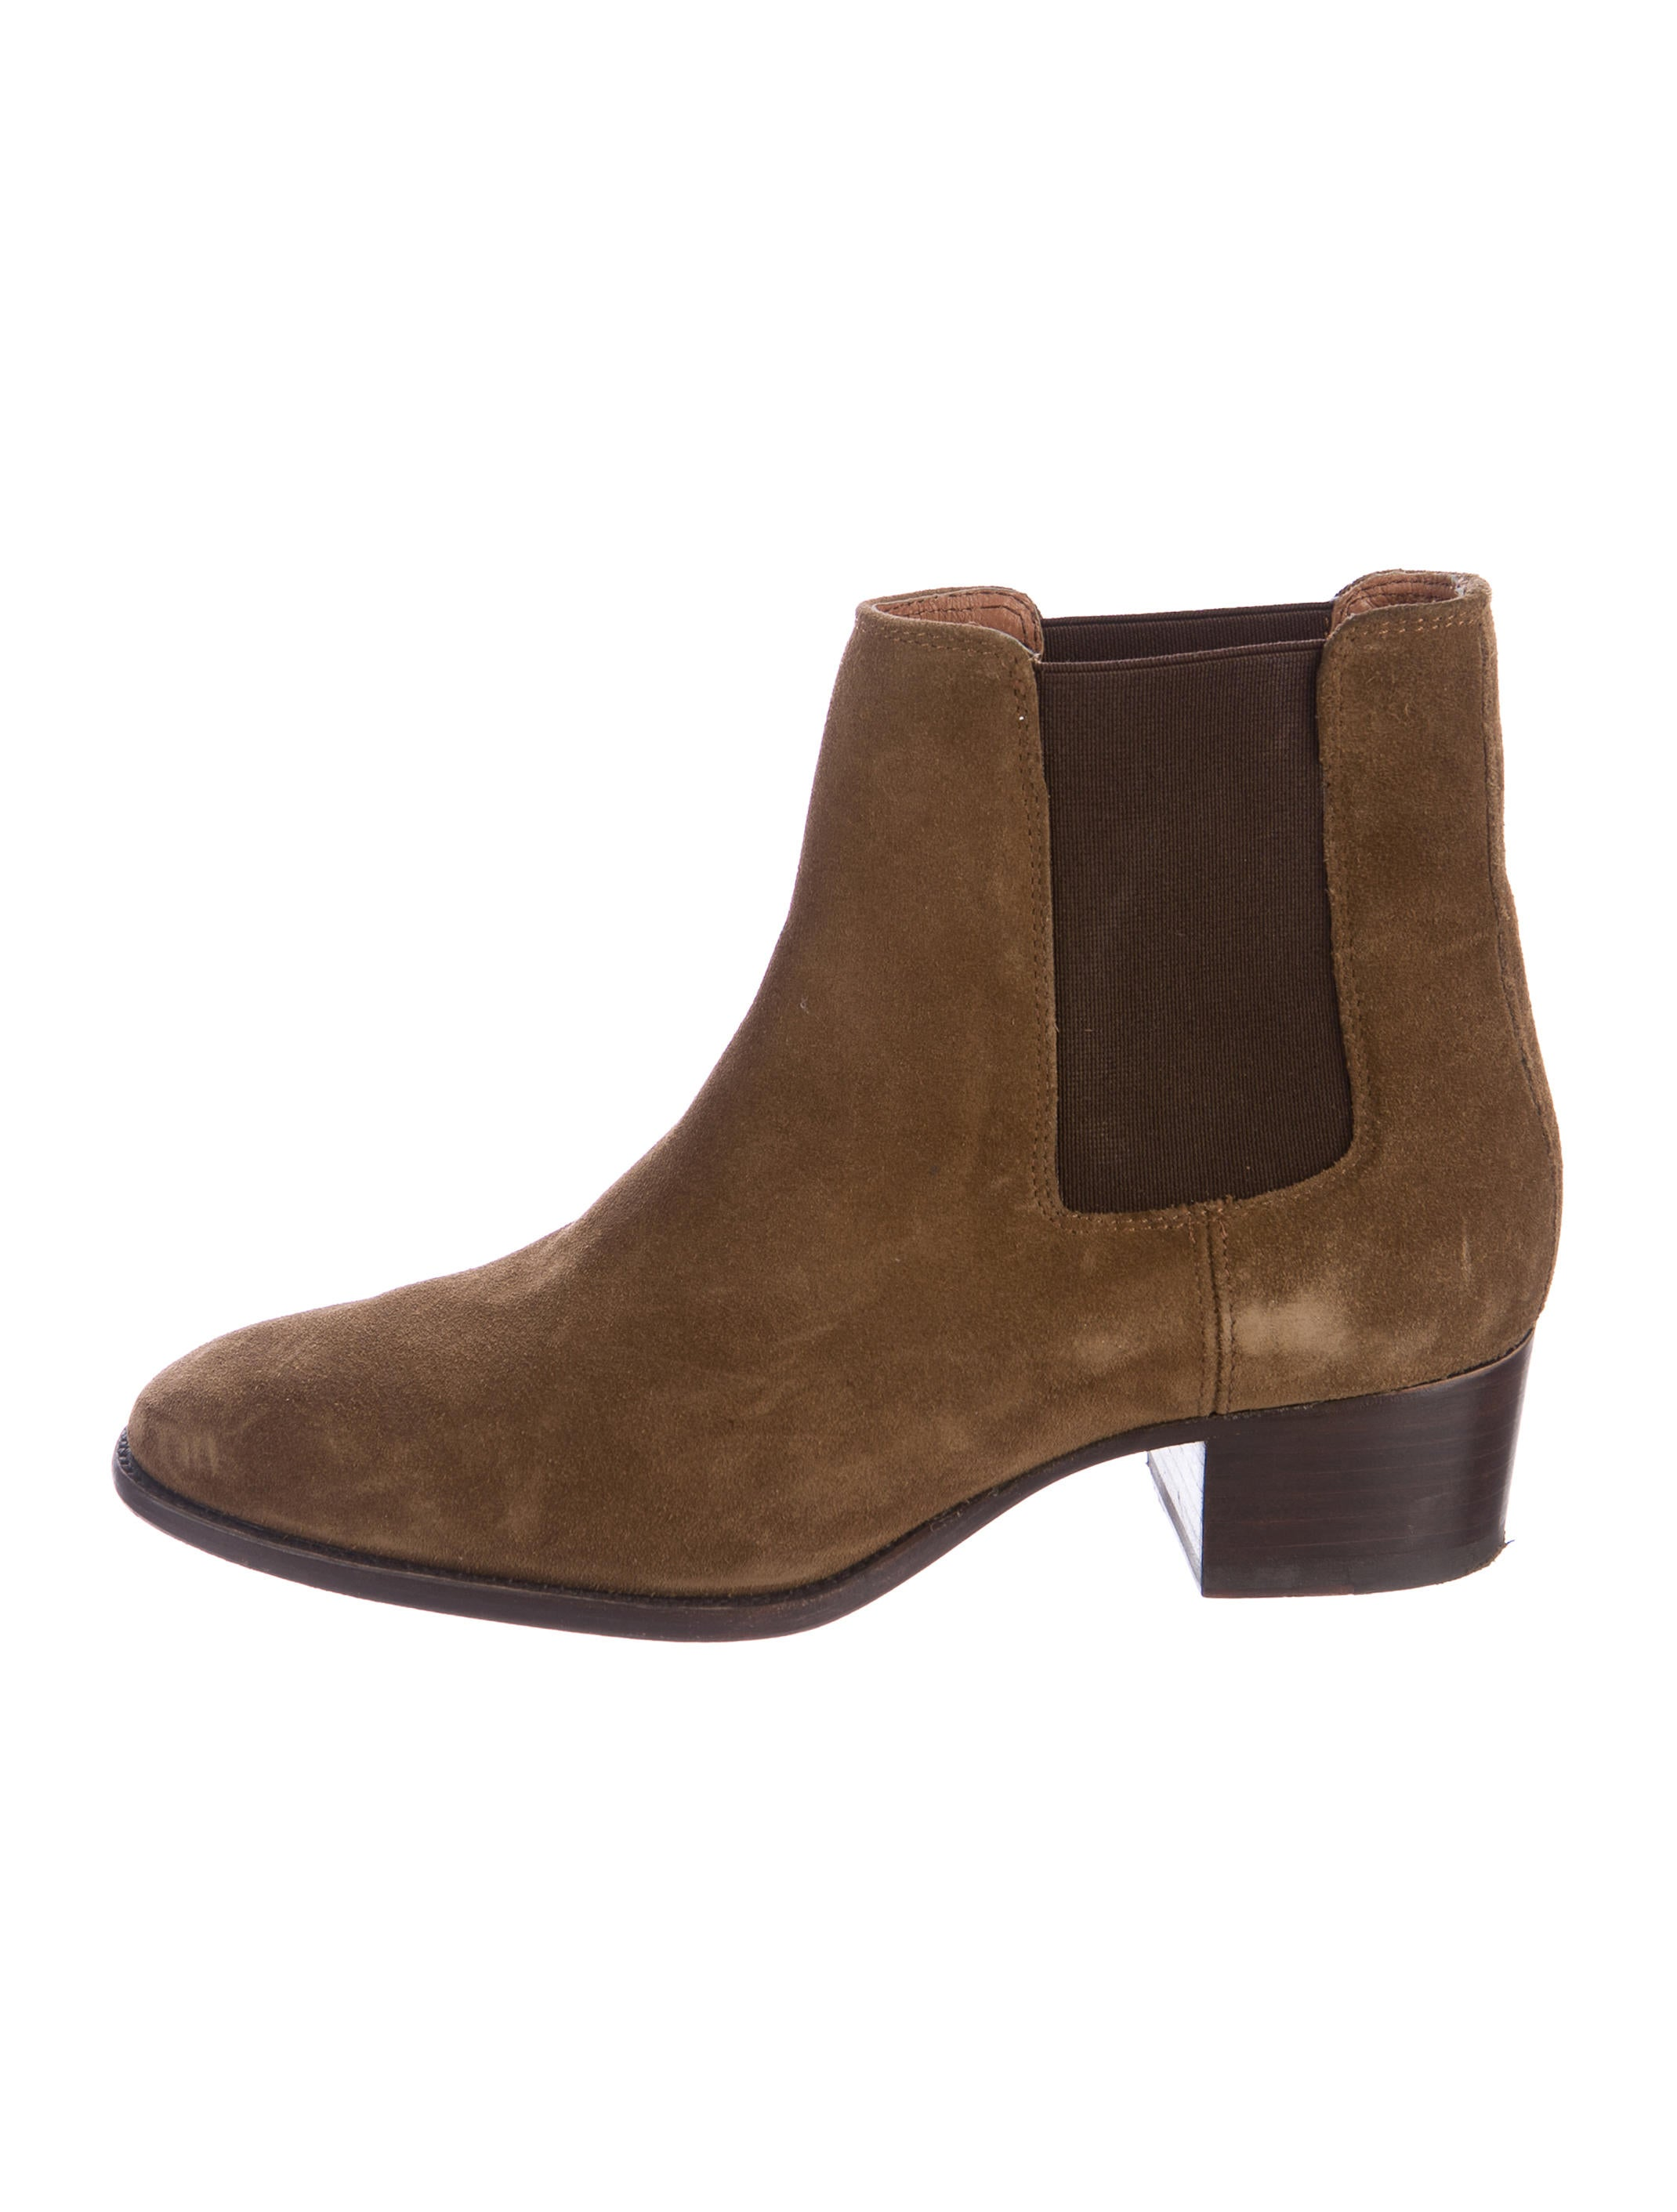 frye suede toe ankle boots shoes wf821485 the